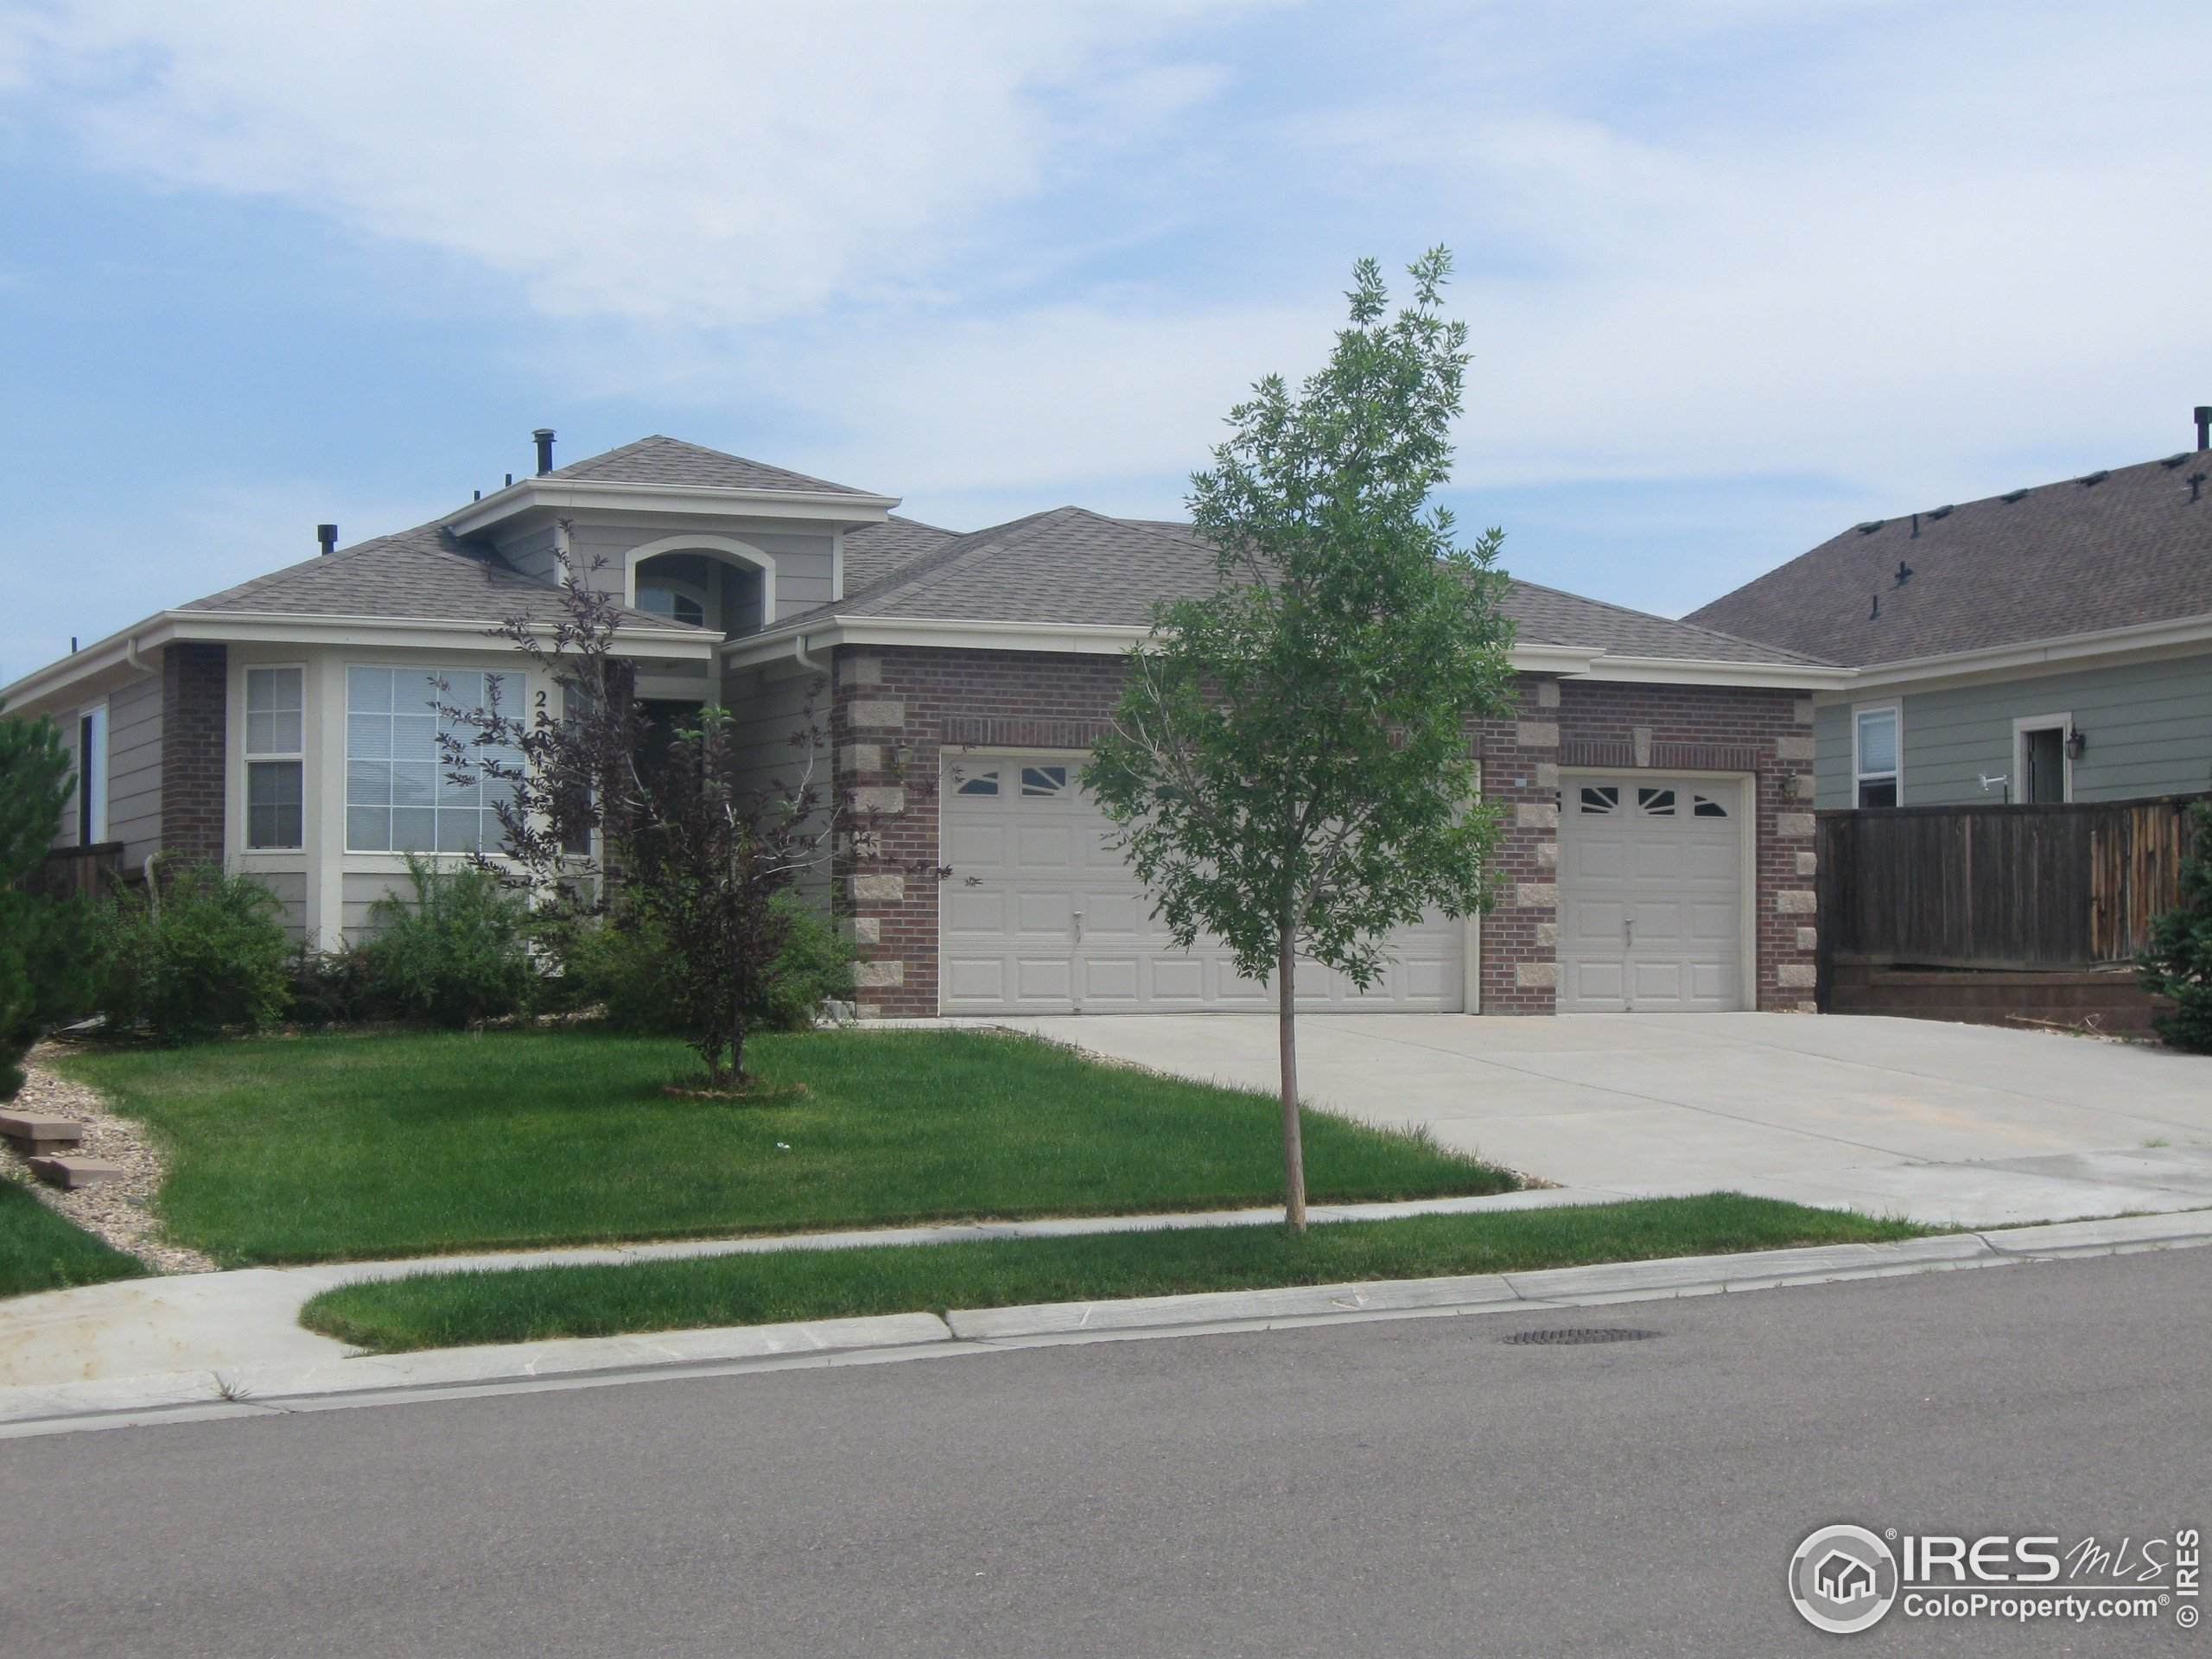 3575 Carbondale St, Loveland, CO 80538 (#936031) :: iHomes Colorado